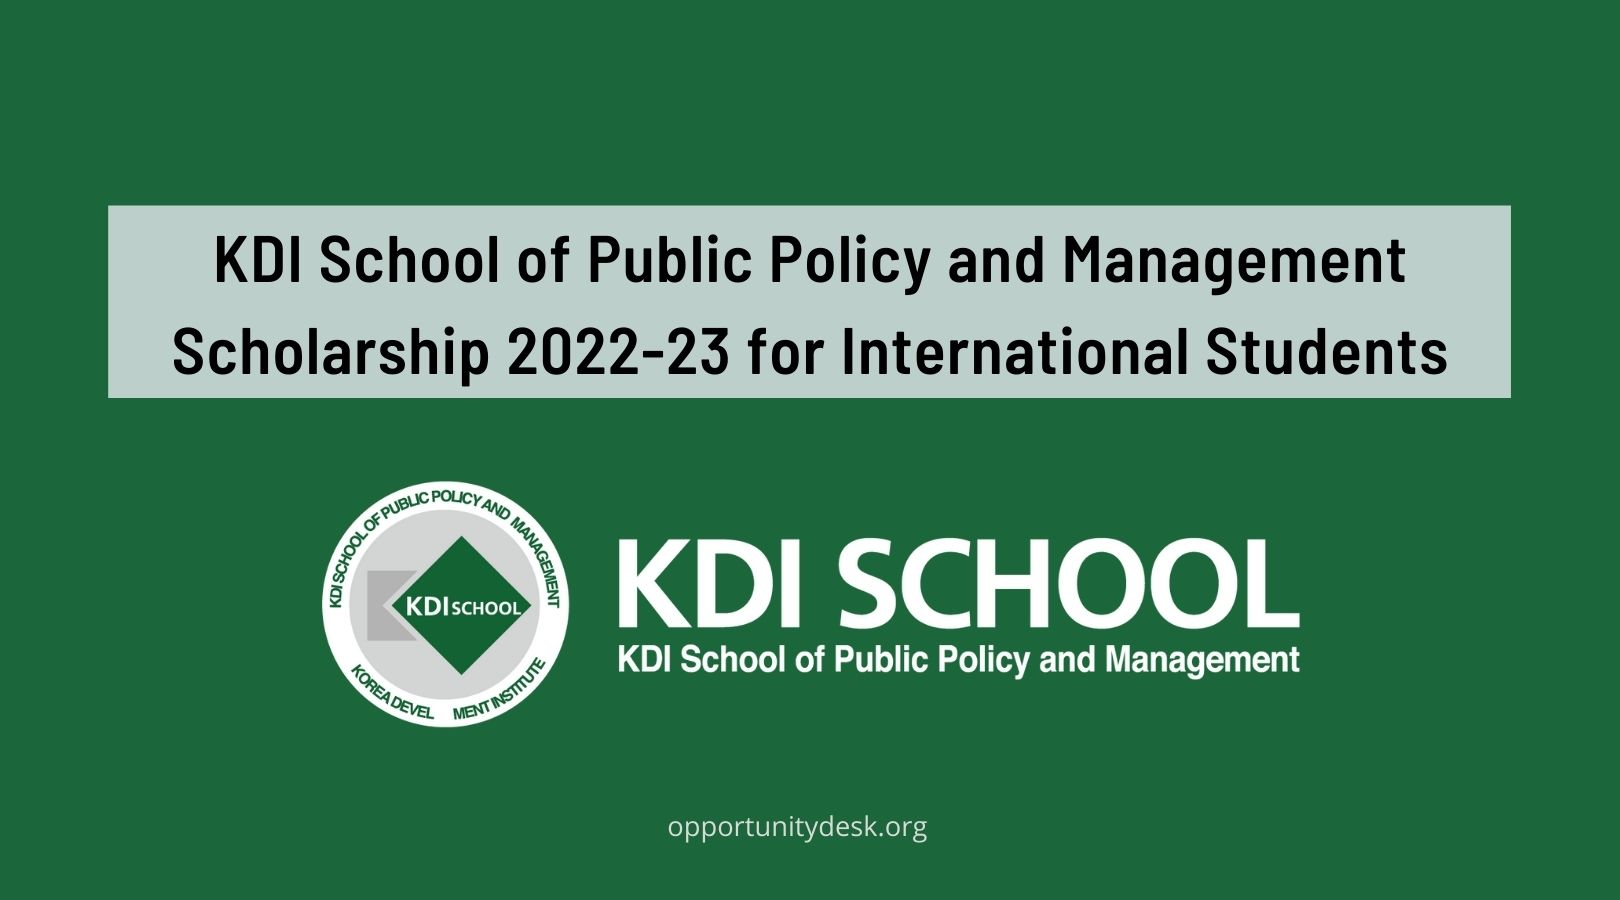 KDI School of Public Policy and Management Scholarship 2022-23 for International Students to study in South Korea (Masters and PhD)